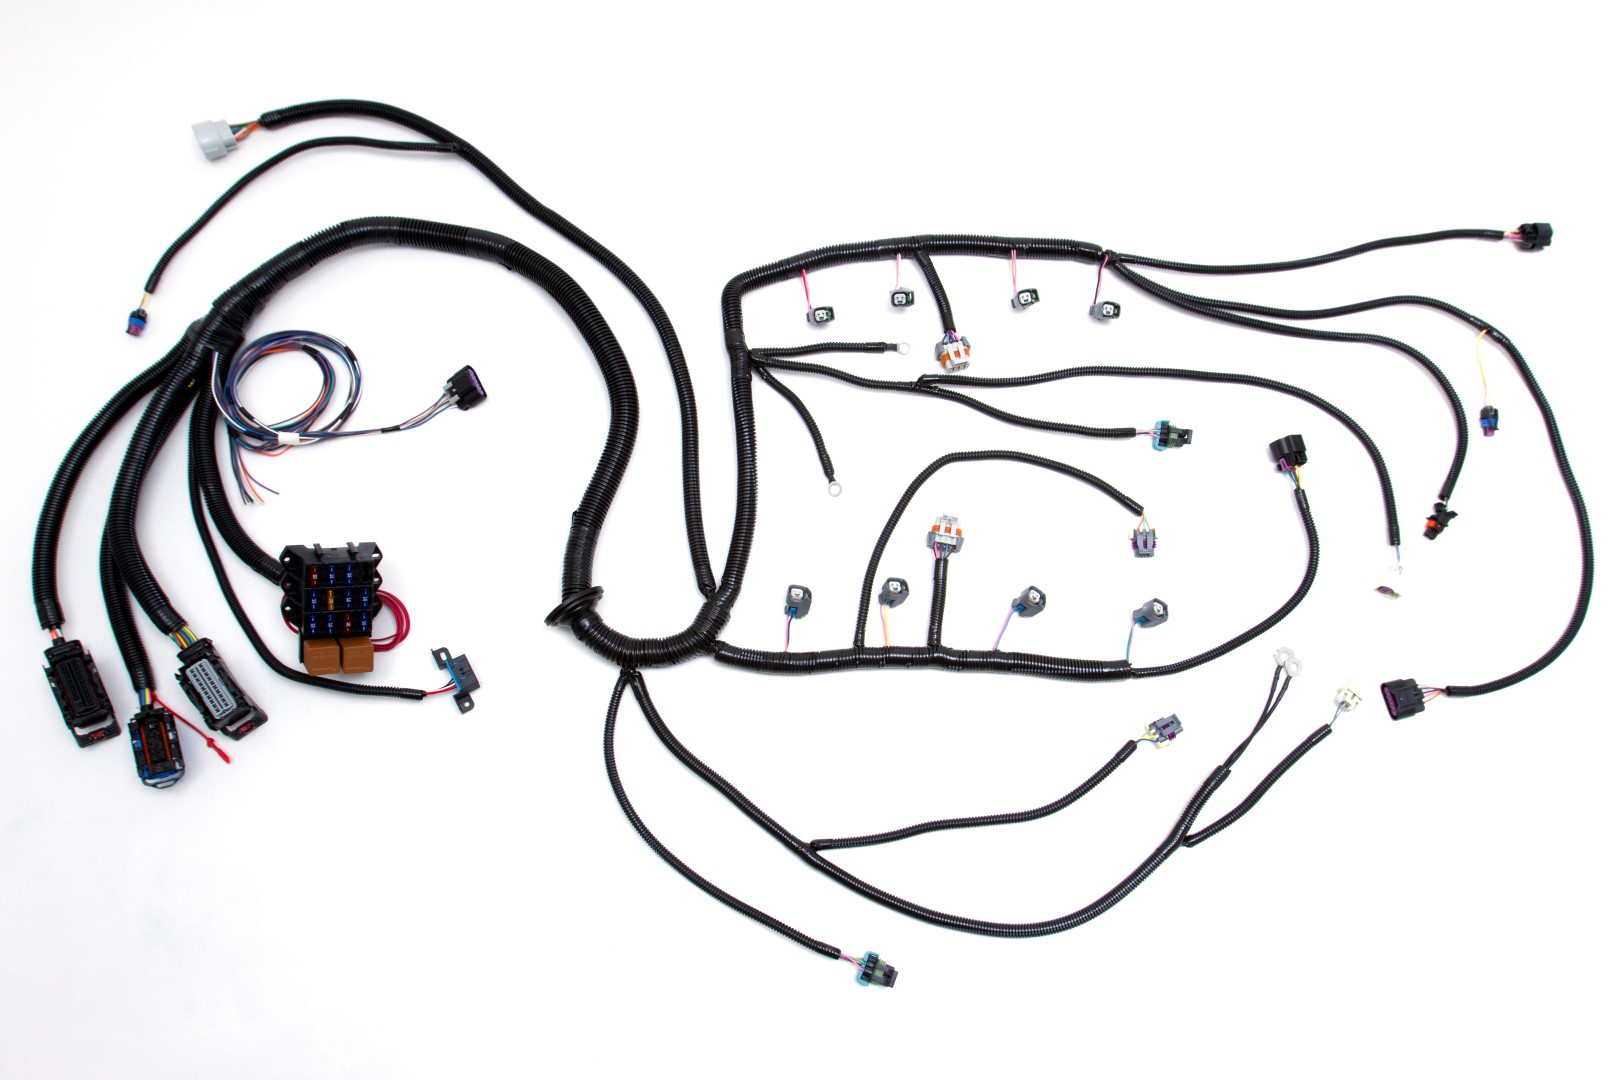 6B12569D615C960145AAE779D1051500 05 '07 ls2 (6 0l) 58x standalone wiring harness w 4l60e custom ls2 wiring harness at arjmand.co